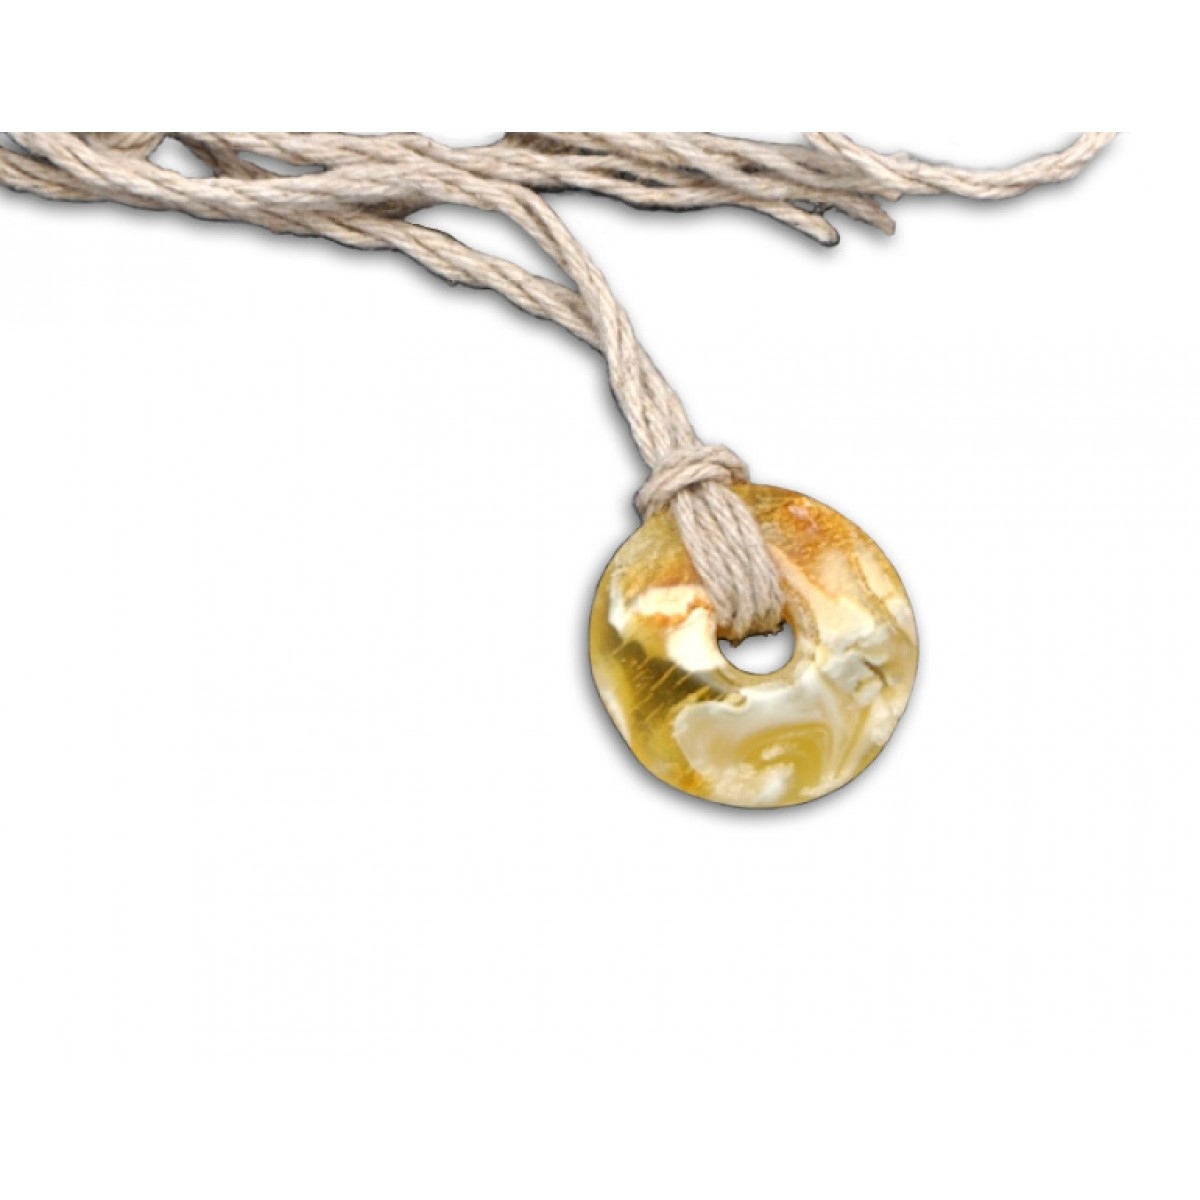 Beautiful Baltic amber amulet with linen thread